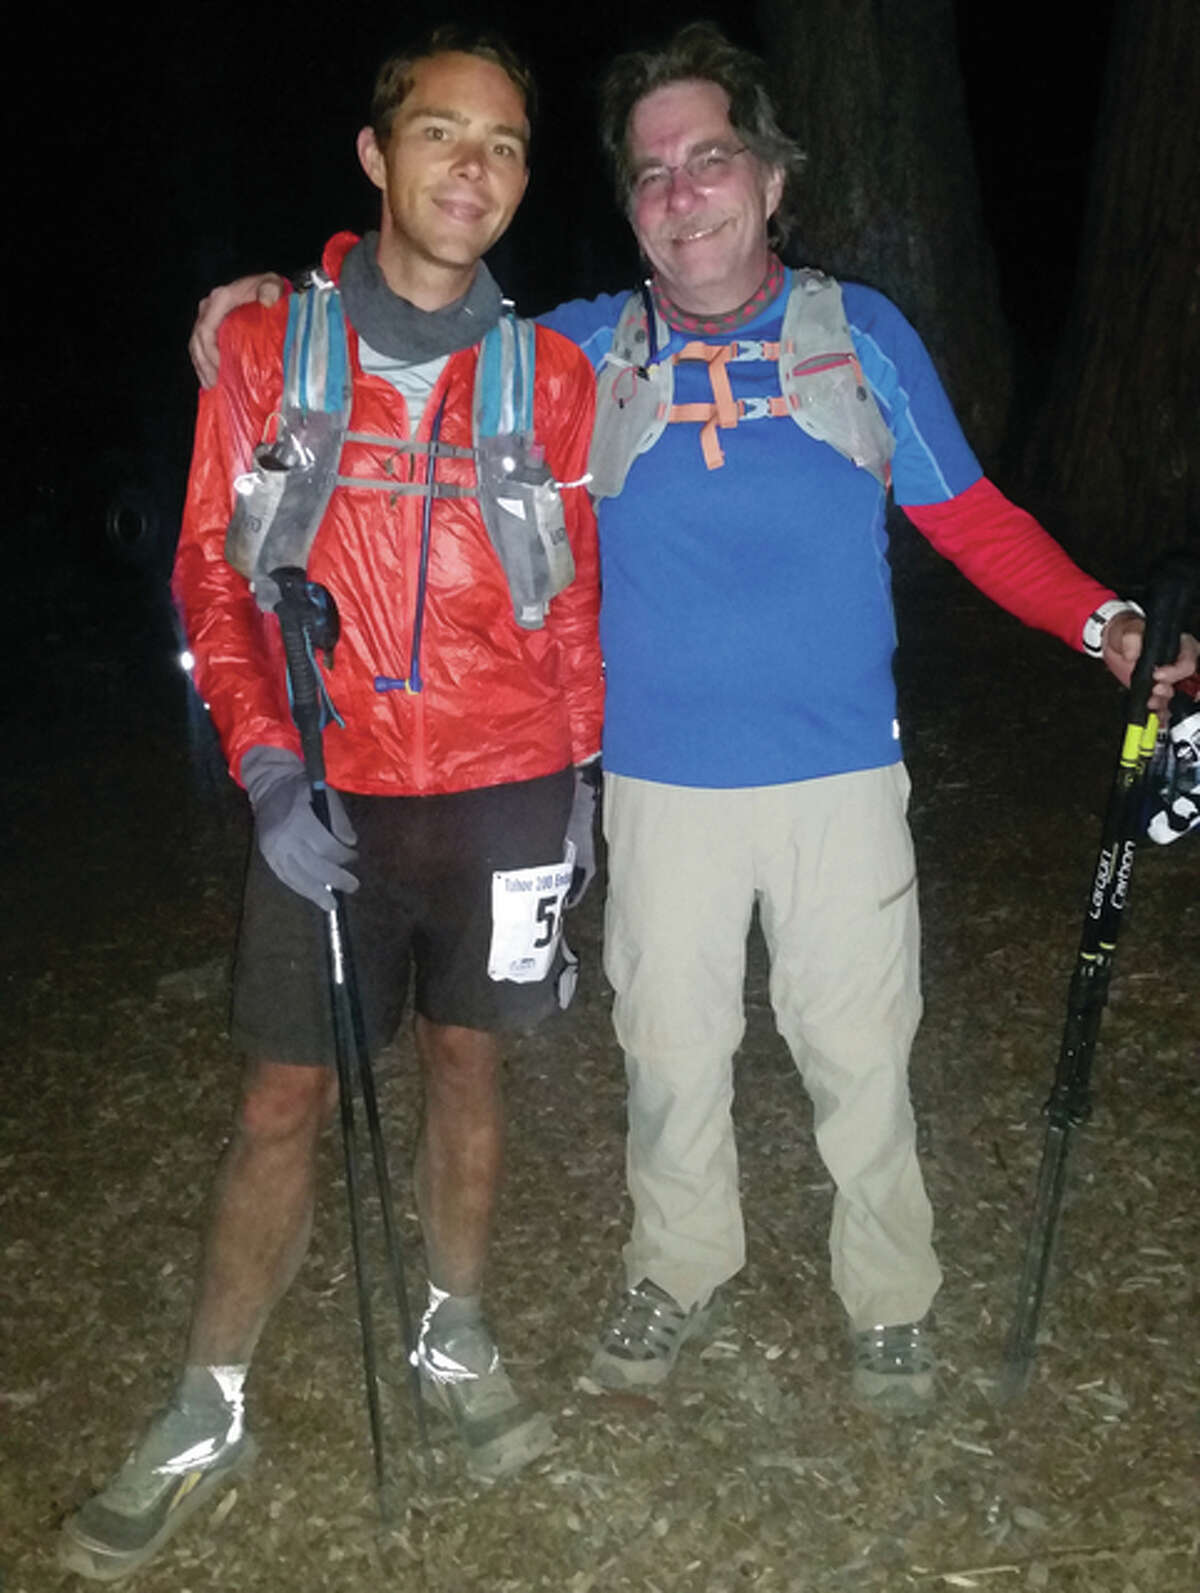 Justin Galbraith, an Alton High School graduate, poses for a photo with his father, Bill Galbraith, right after Justin finished the Tahoe-200, a 205-mile running race around Lake Tahoe. He completed the race is 85 hours with very little sleep.